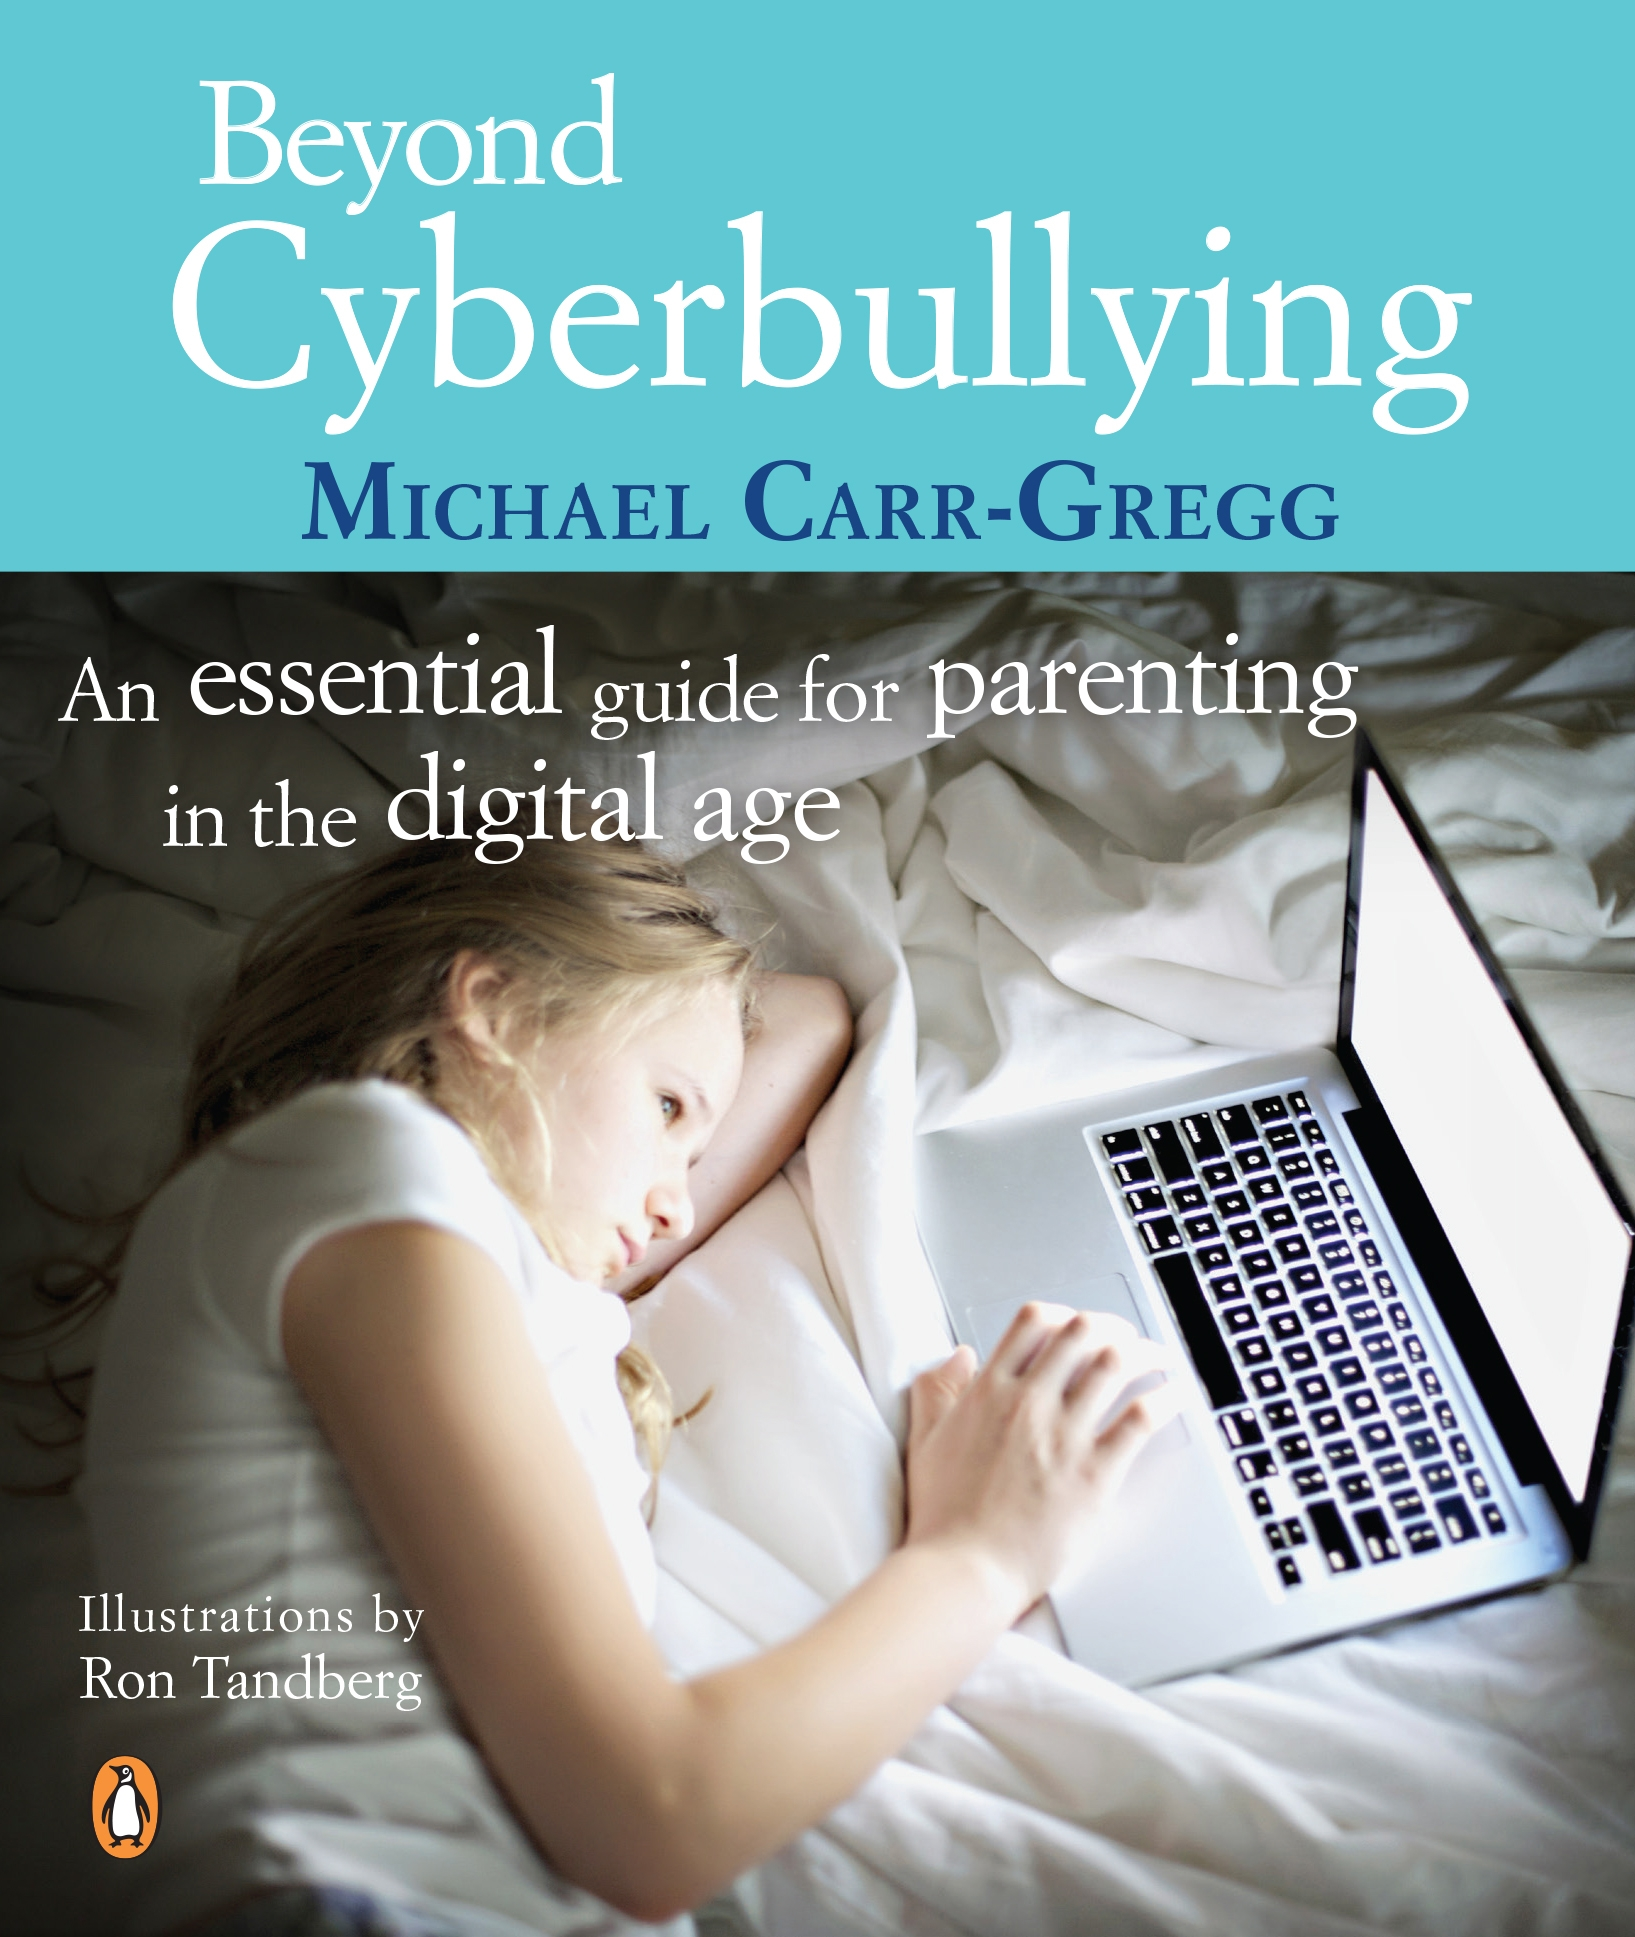 Beyond Cyberbullying An Essential Guide for parenting in the digital age